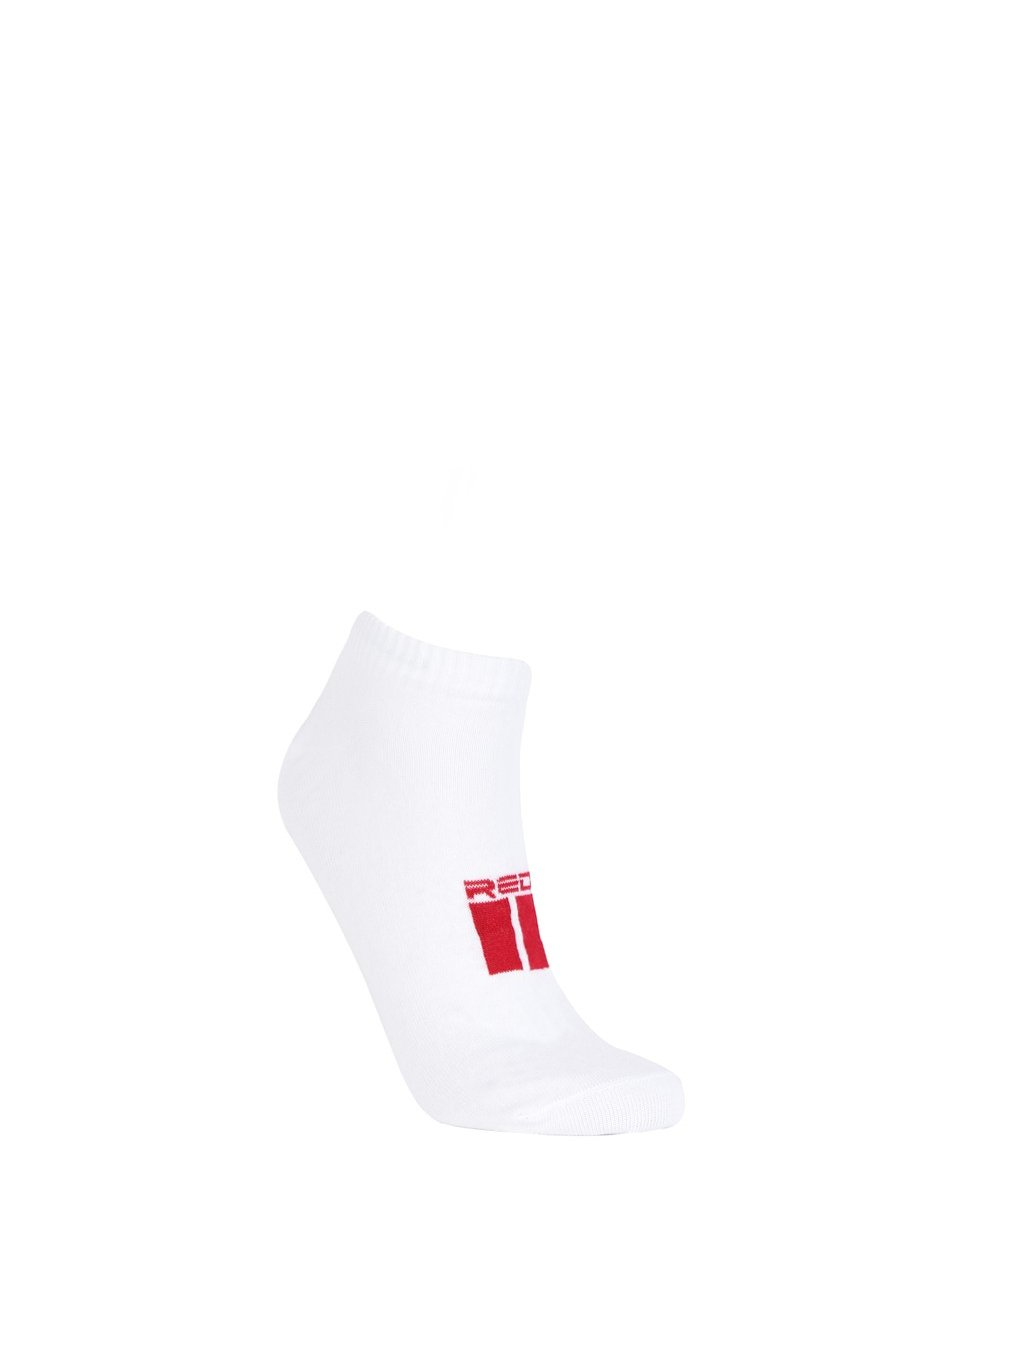 Ponožky DOUBLE RED THE RED SOCKS White Low